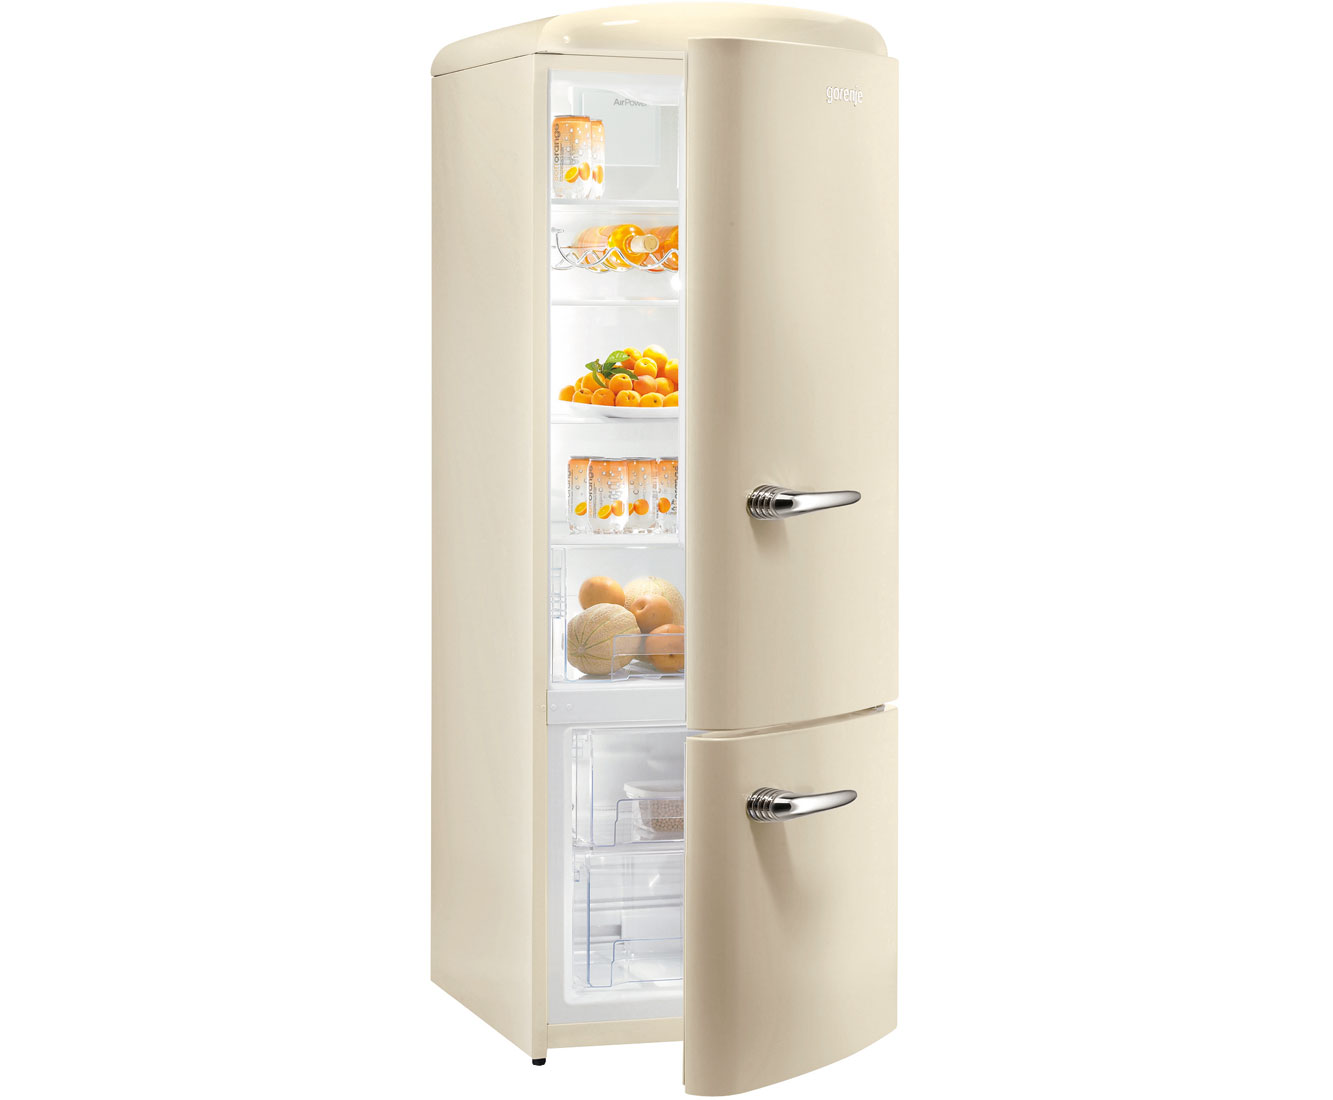 Retro Kühlschrank Idealo : Gorenje retro collection rk oc kühl gefrierkombination